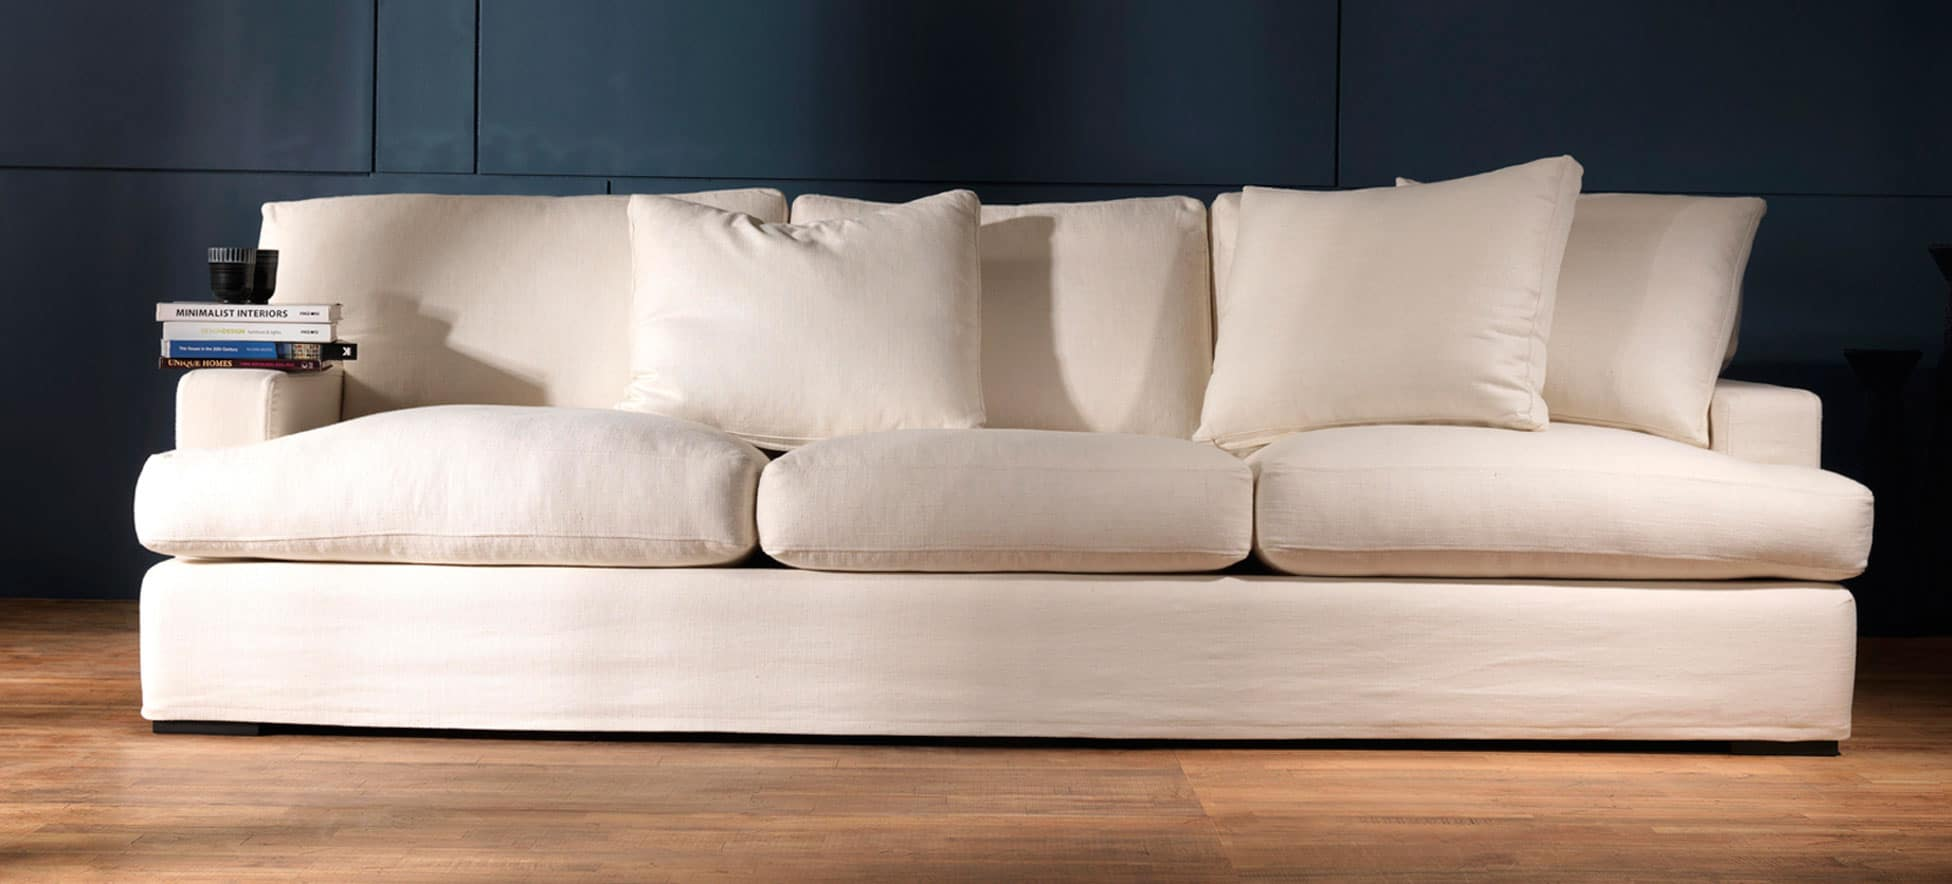 Canap Tissu Luxe